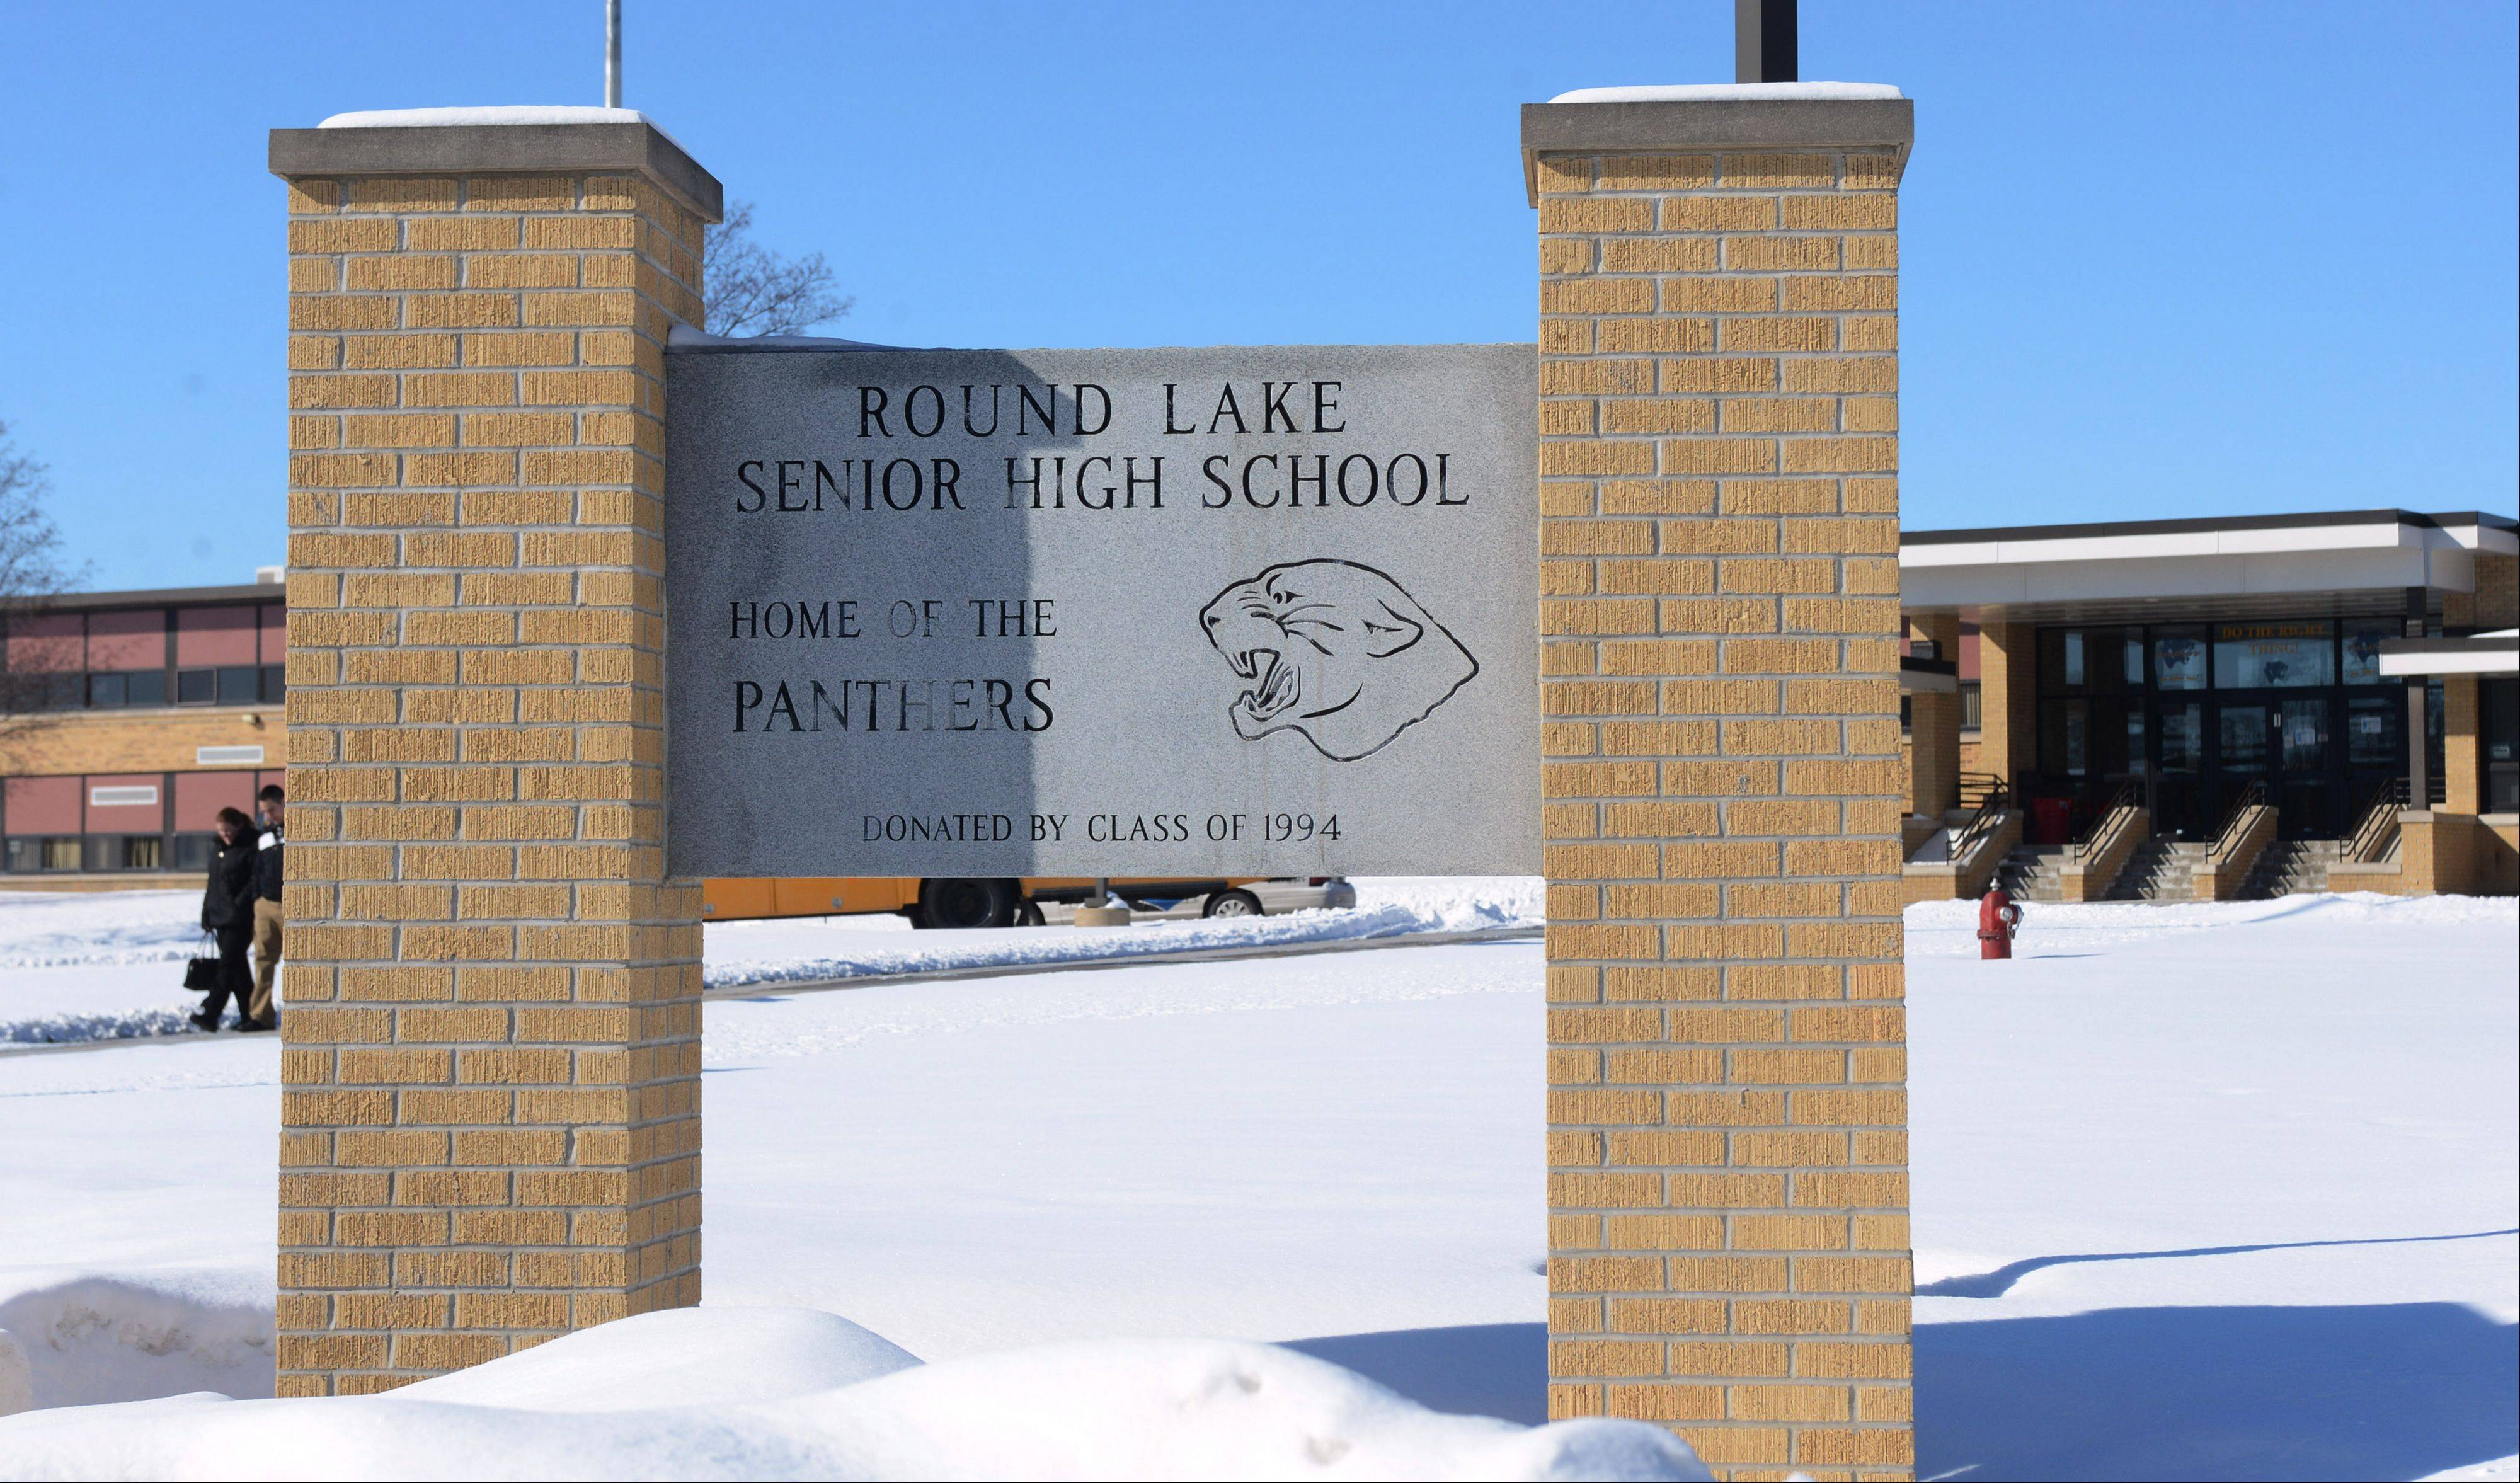 Round Lake Area Unit District 116 will go to voters next month seeking permission to borrow $29 million for a high school expansion and renovations to the current structure. Part of the proposal calls for 30 new classrooms at Round Lake High School.